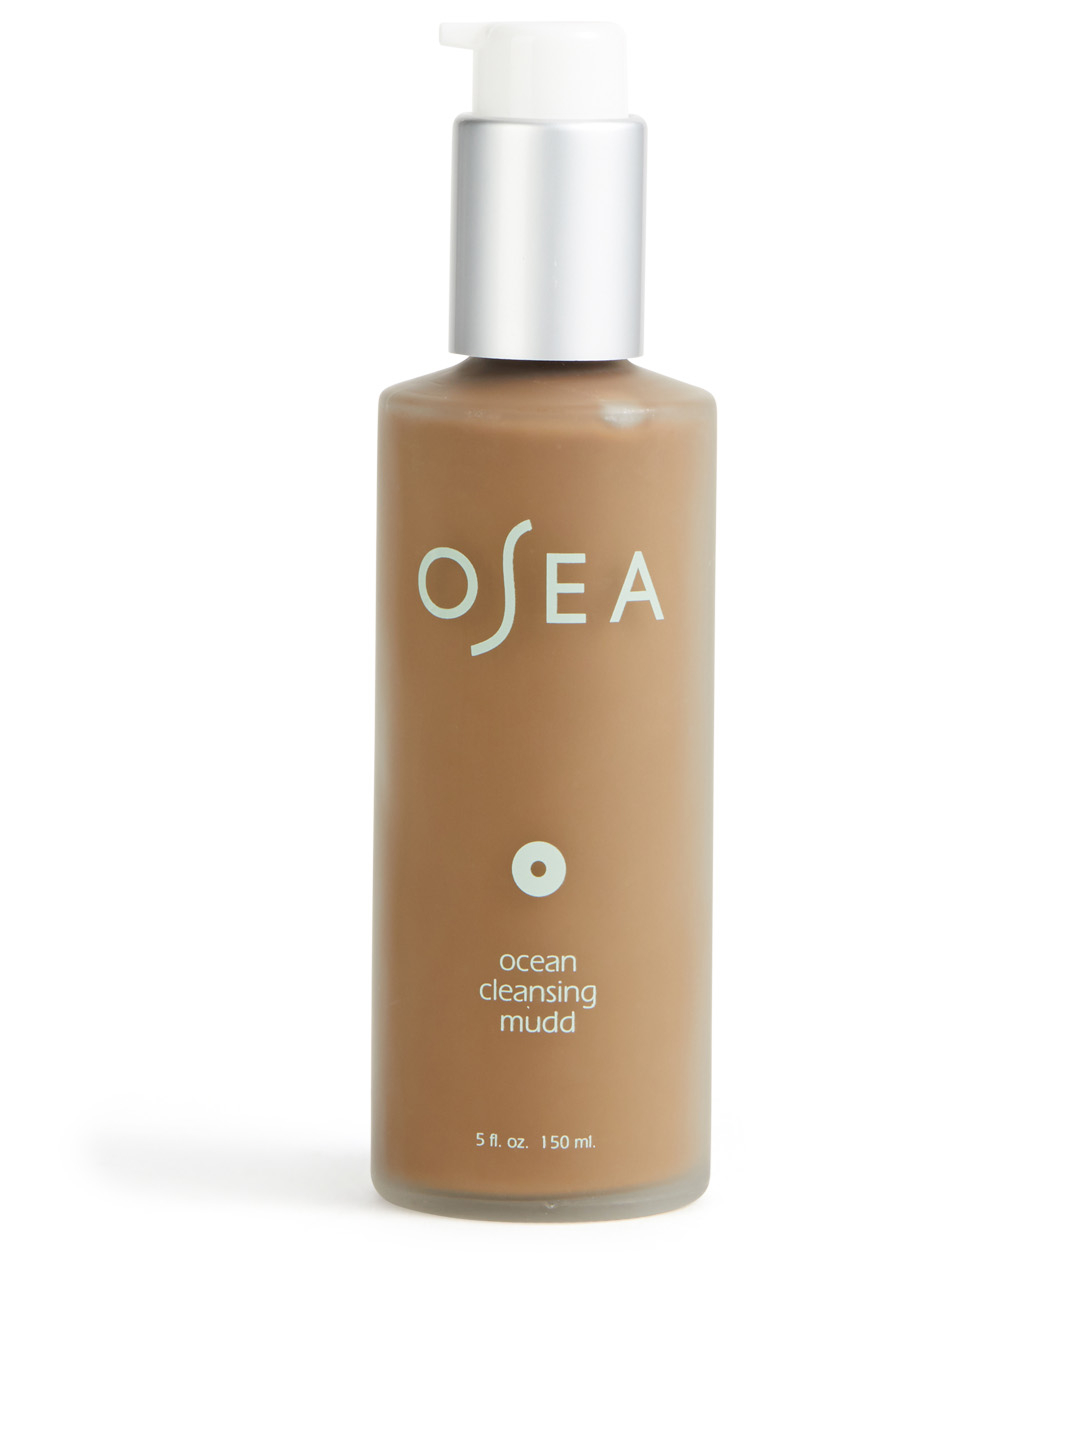 OSEA Ocean Cleansing Mudd Beauty